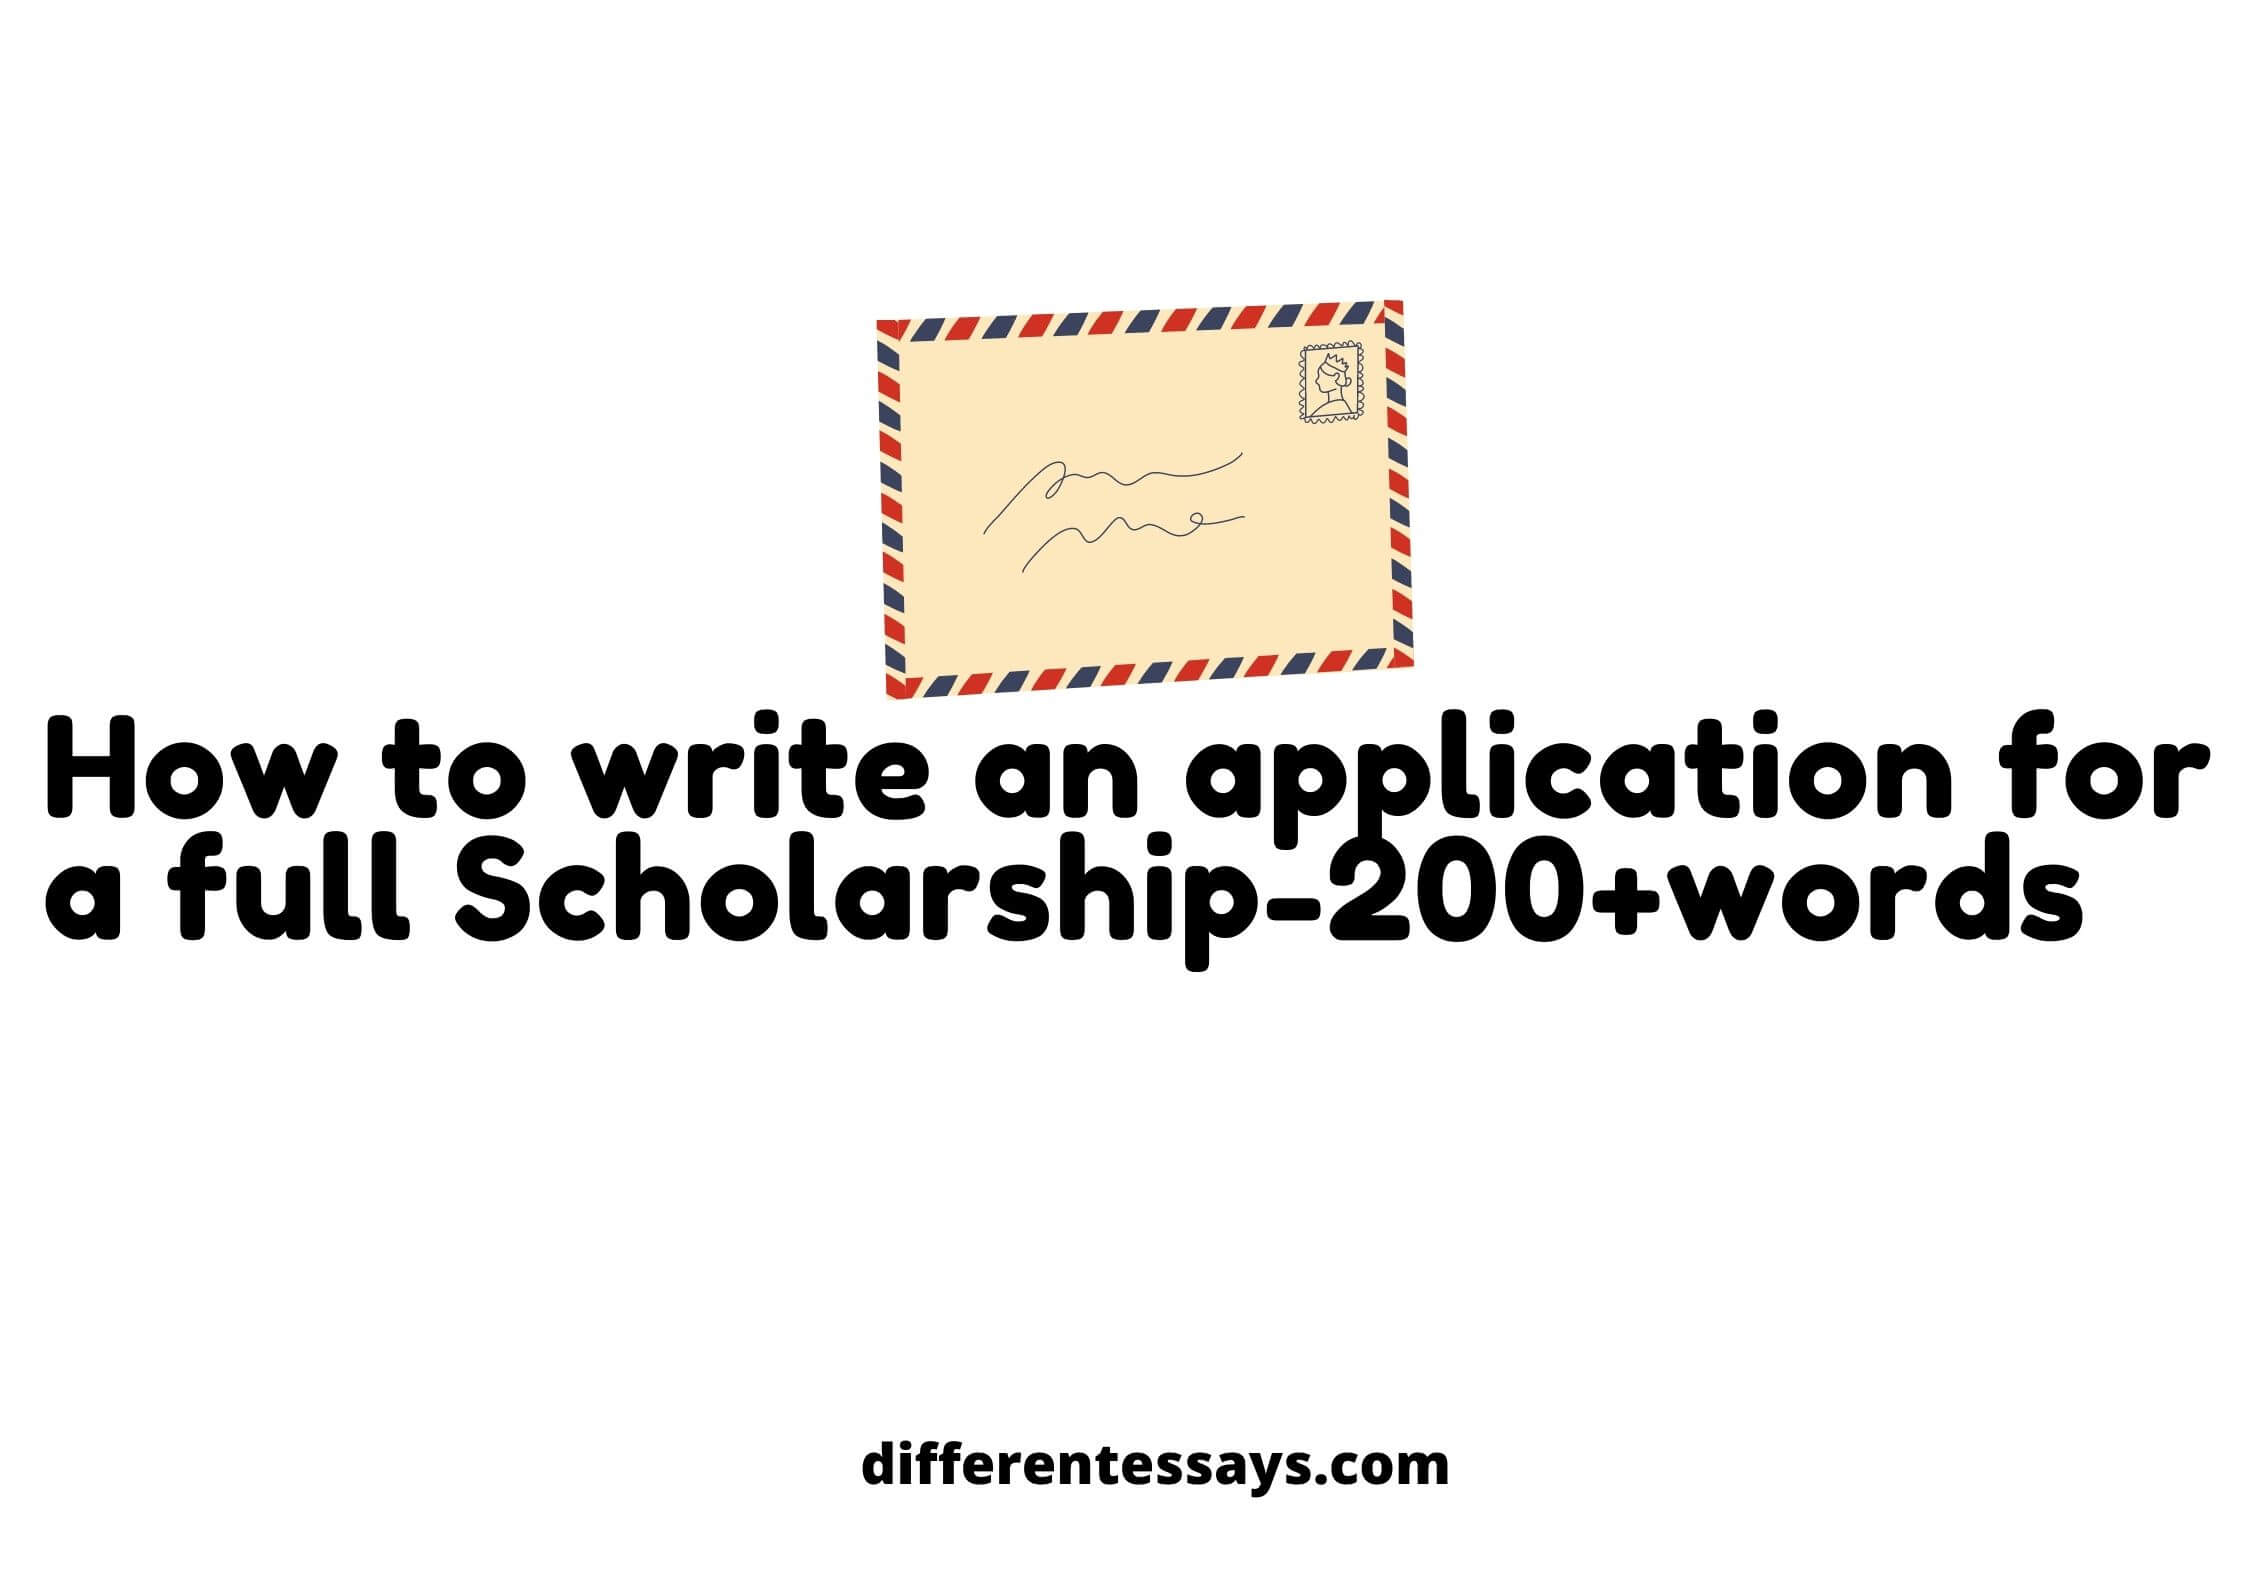 How to write an application for a full Scholarship